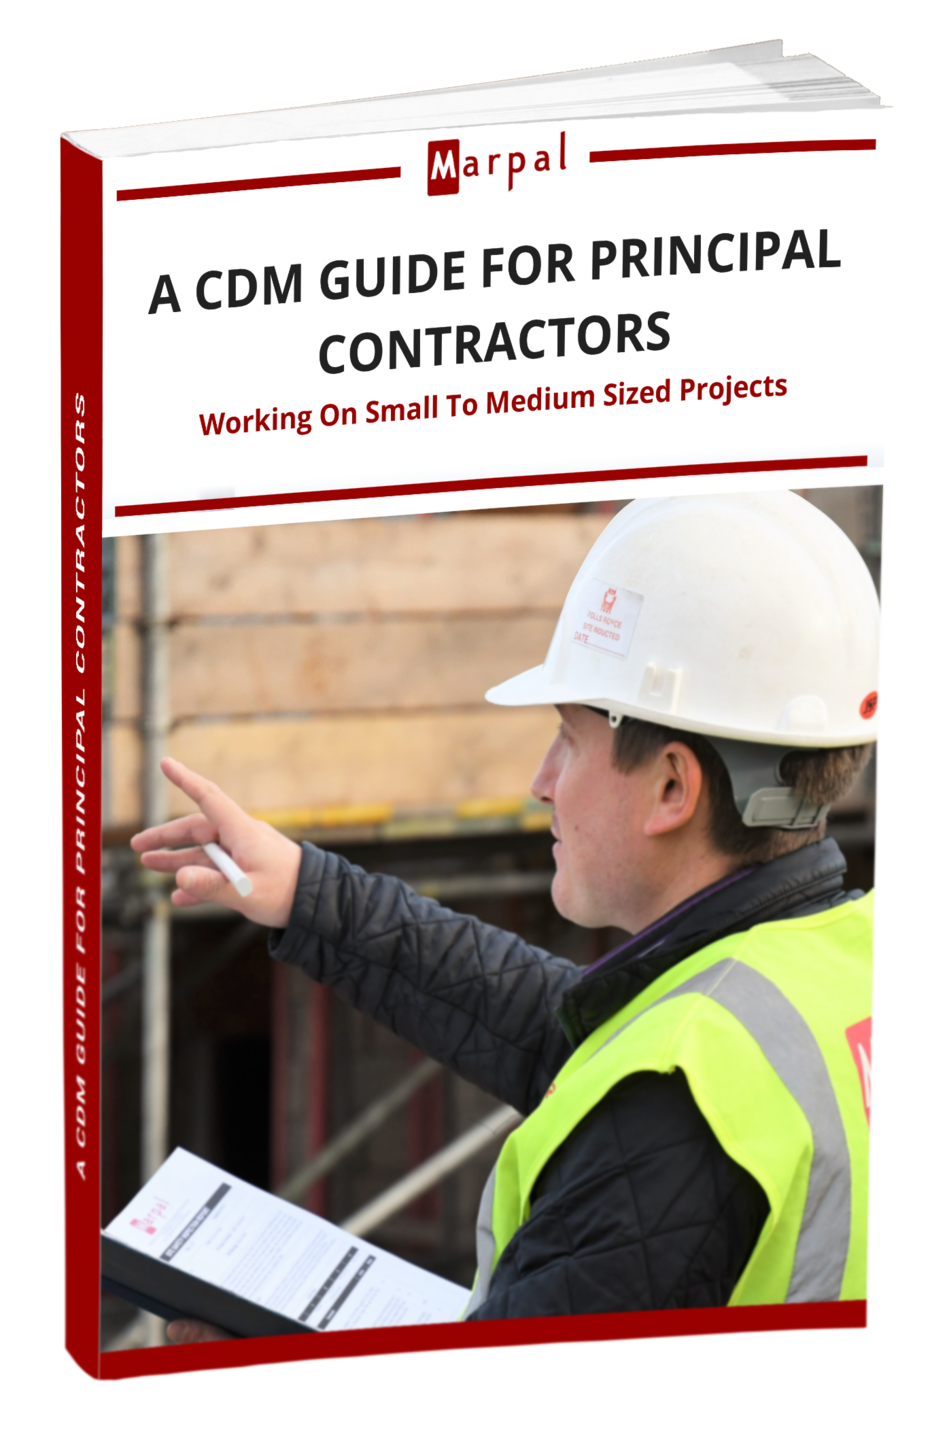 A CDM Guide For Principal Contractors